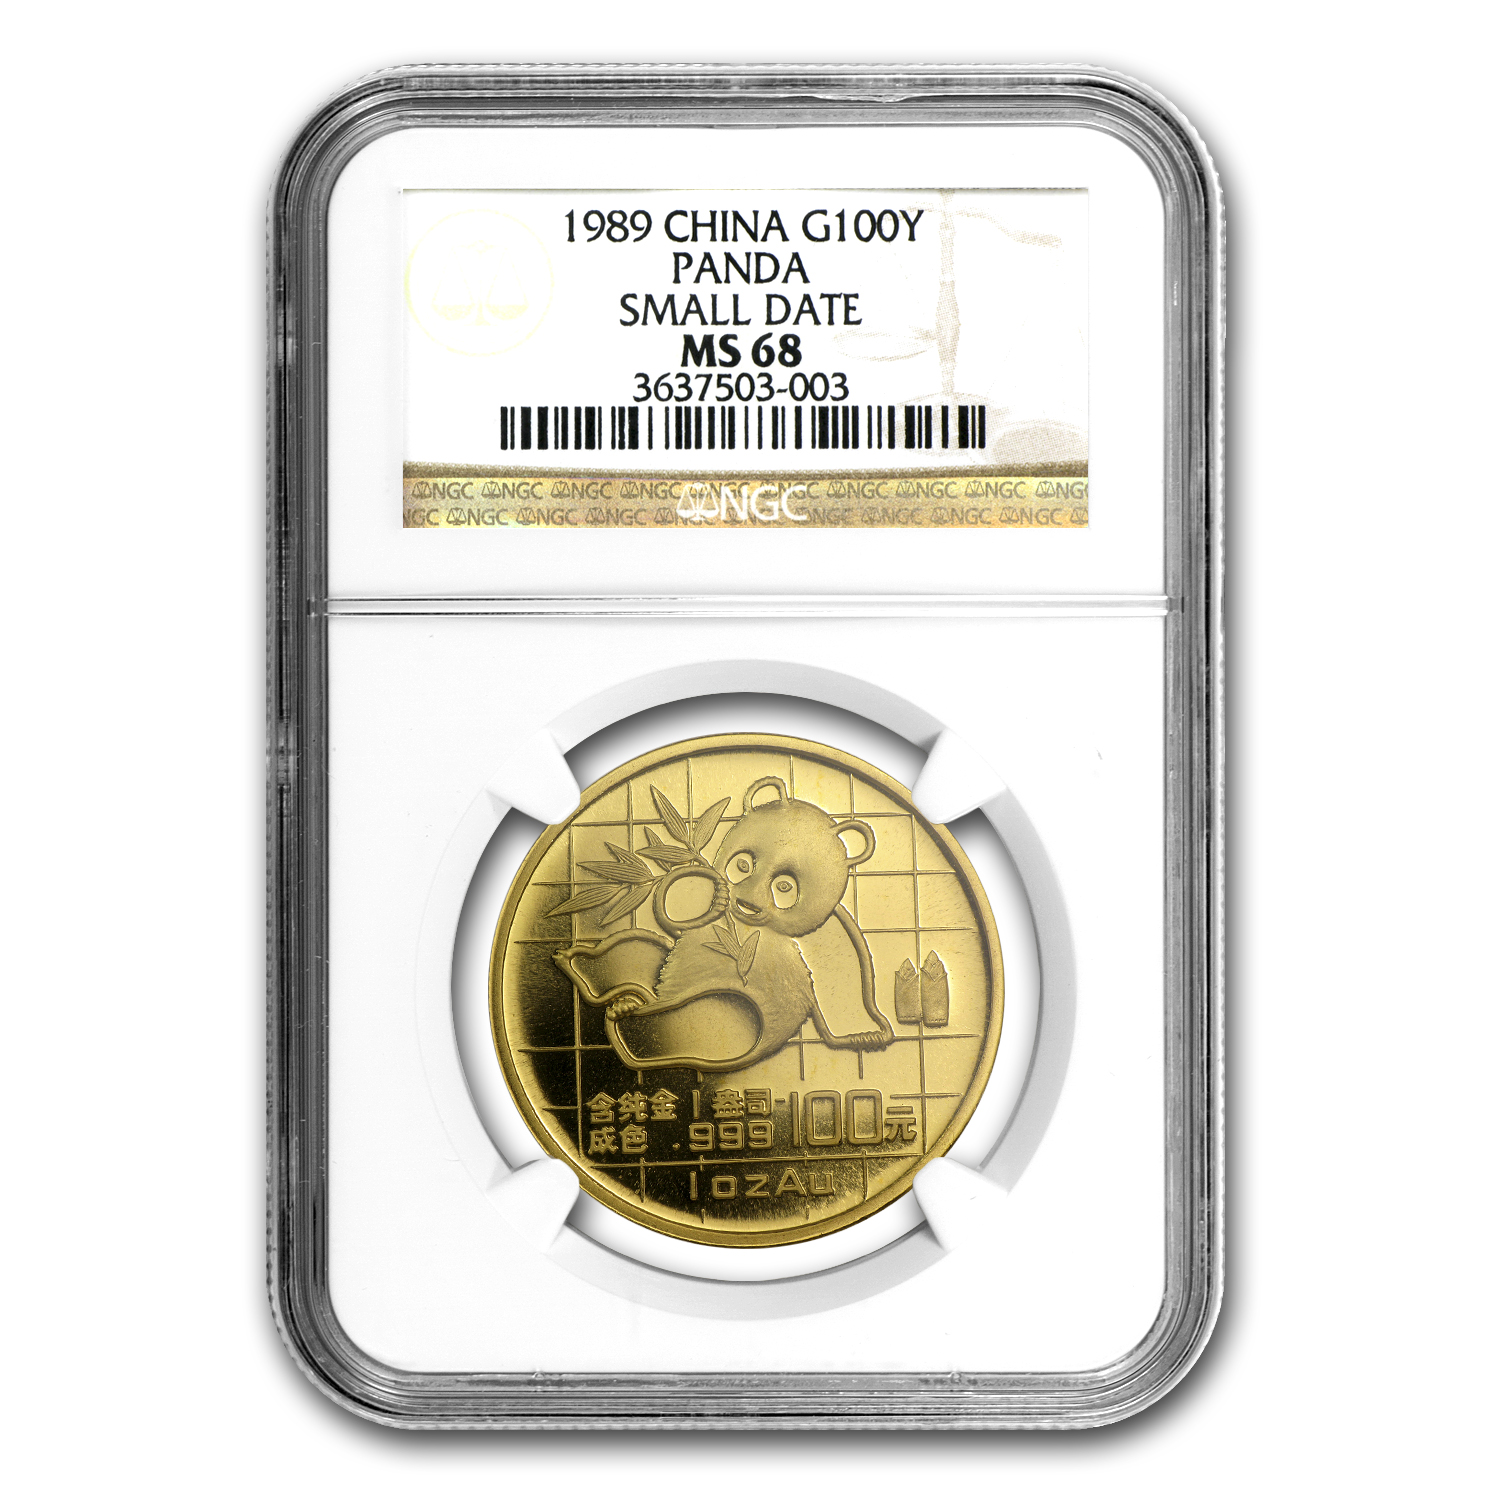 1989 China 1 oz Gold Panda Small Date MS-68 NGC